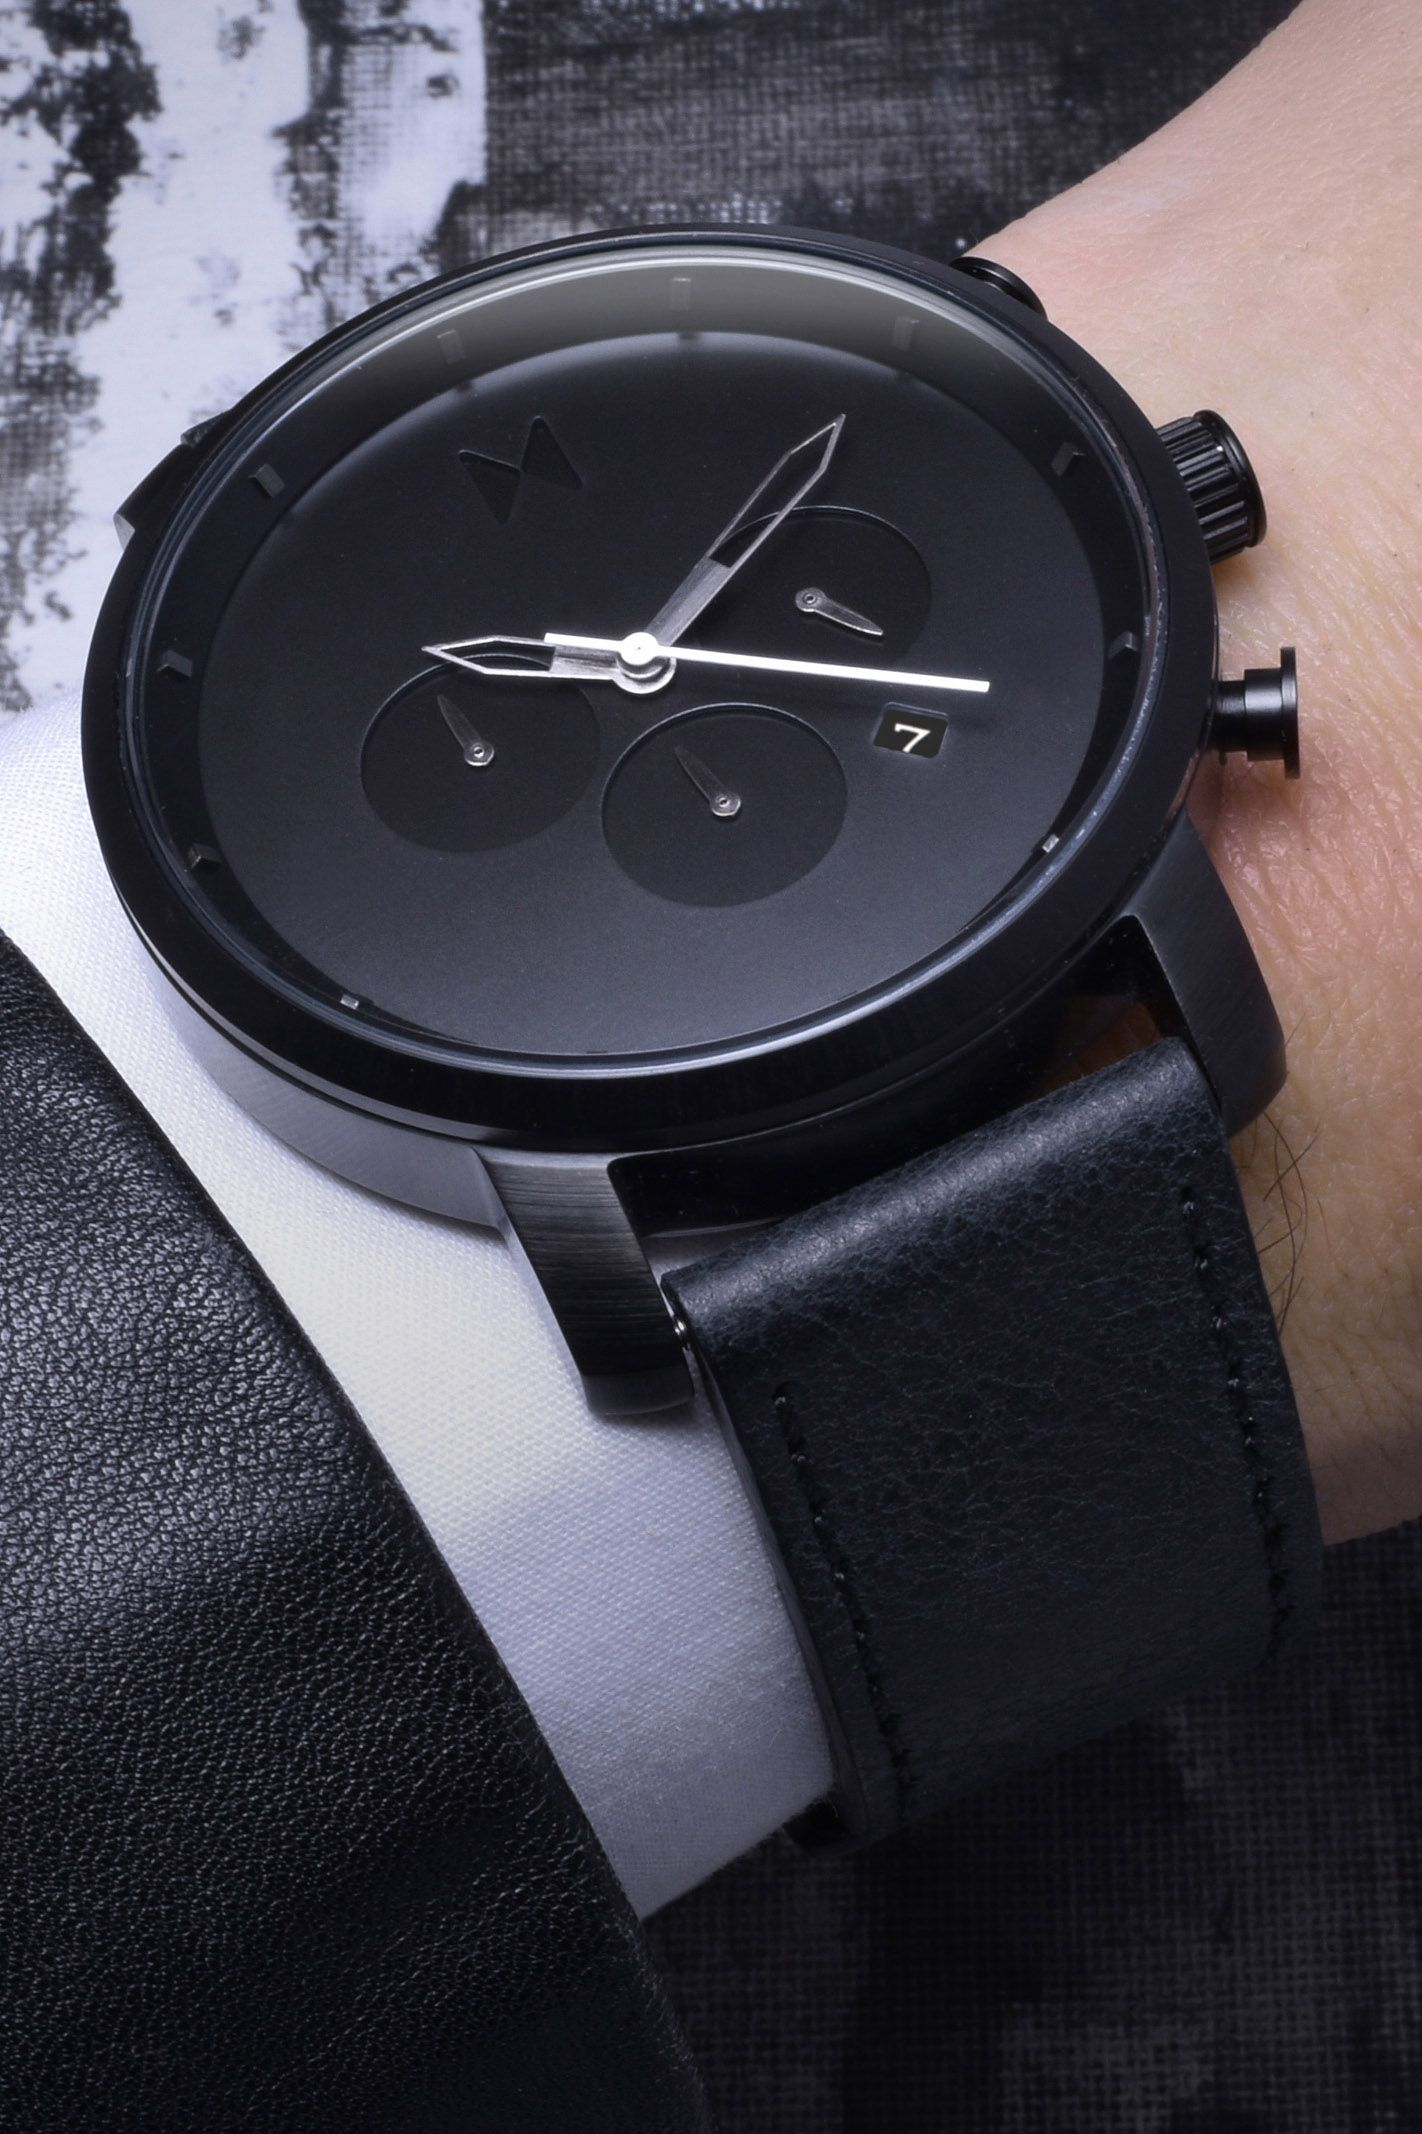 Chrono Black Leather | Watches - Watches for men, Hugo ...